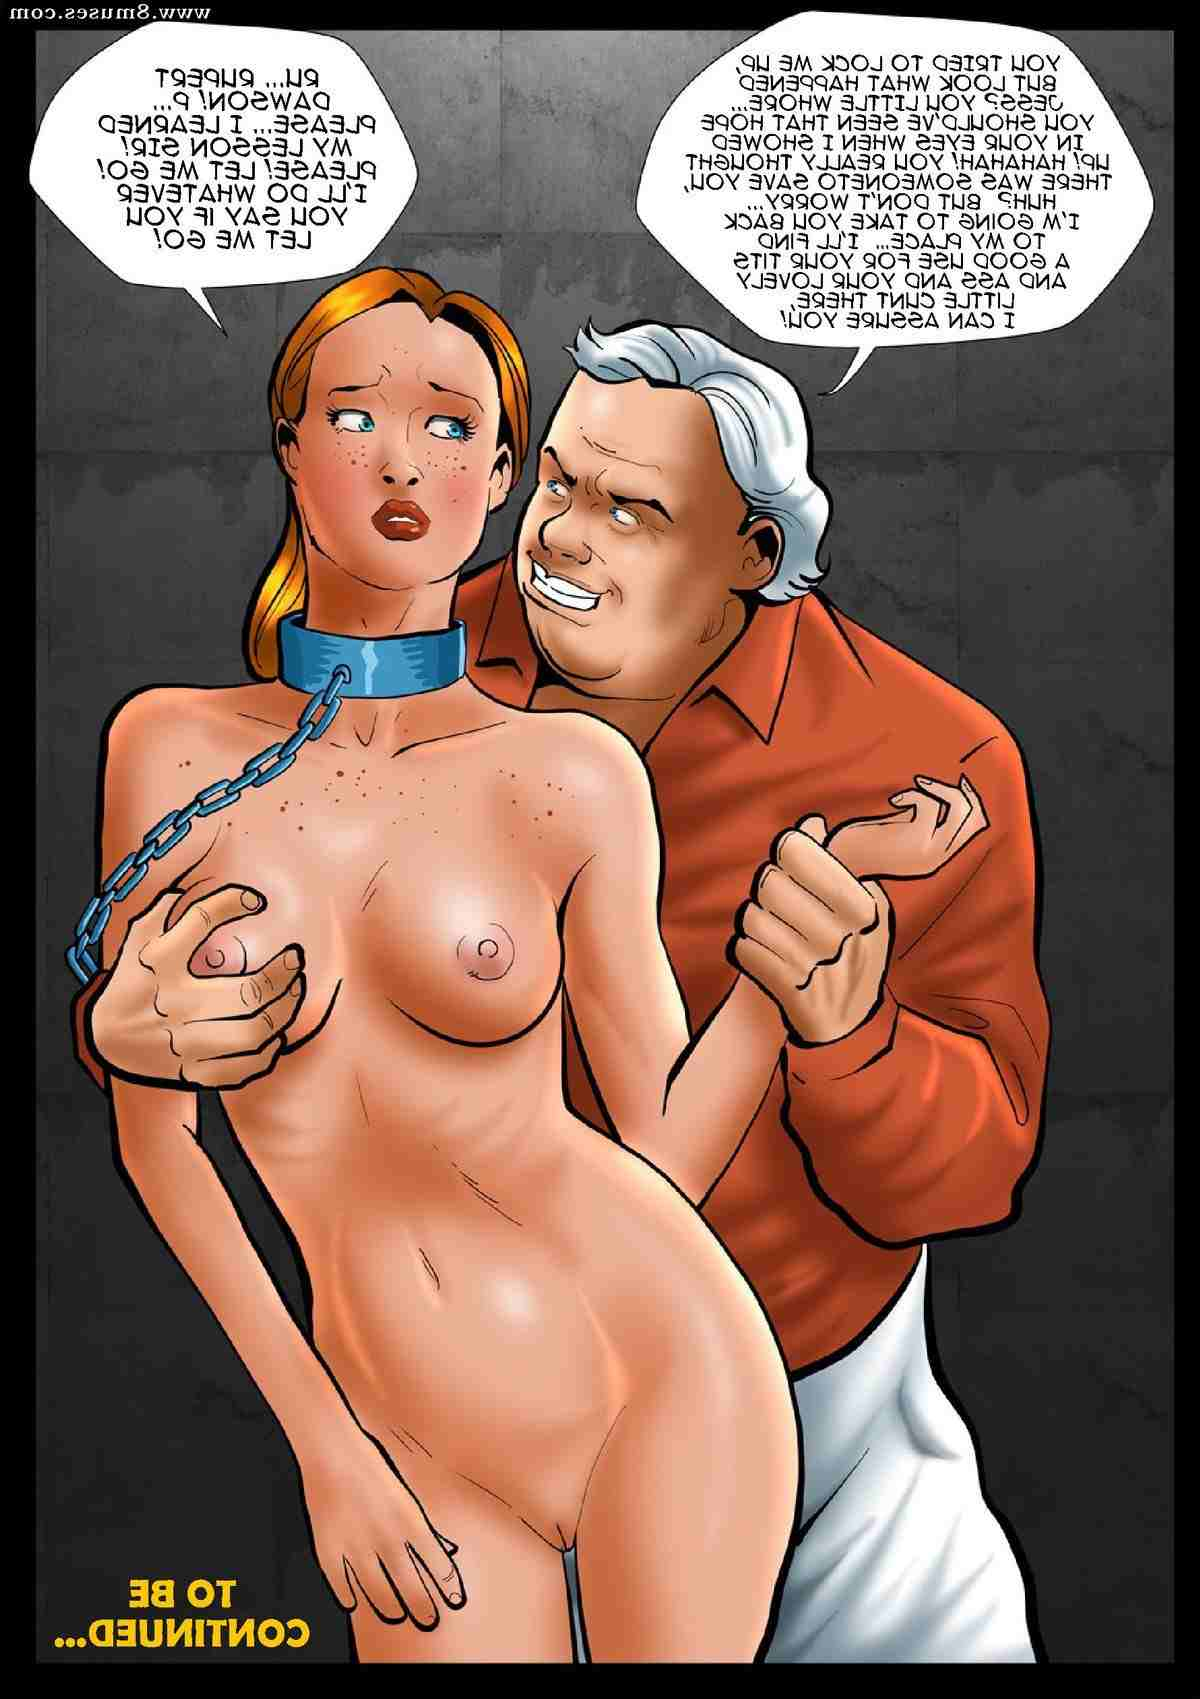 Fansadox-Comics/401-500/Fansadox-413-A-Bold-Officer-Cagri Fansadox_413_-_A_Bold_Officer_-_Cagri__8muses_-_Sex_and_Porn_Comics_42.jpg